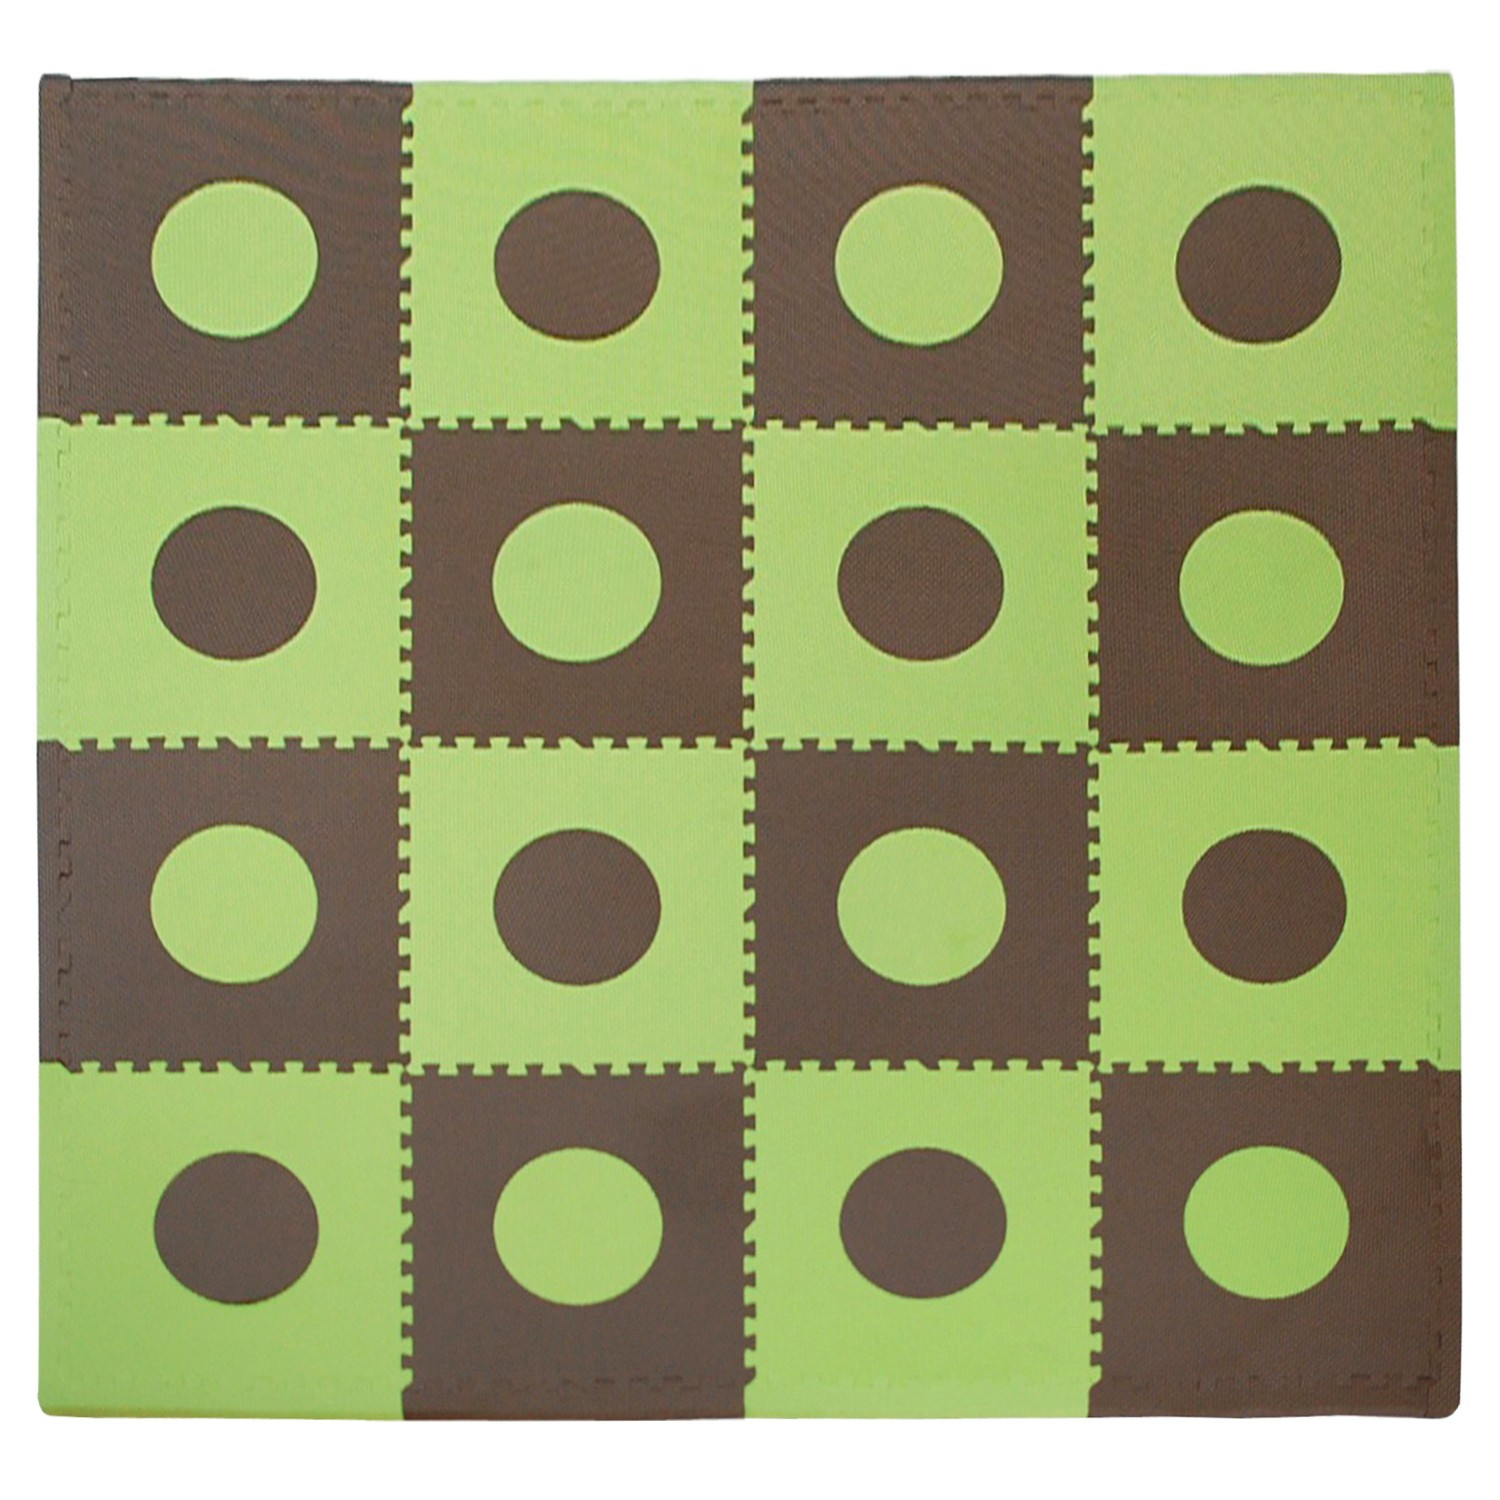 Eva Foam Play Mats - Green & Brown Floor Tiles